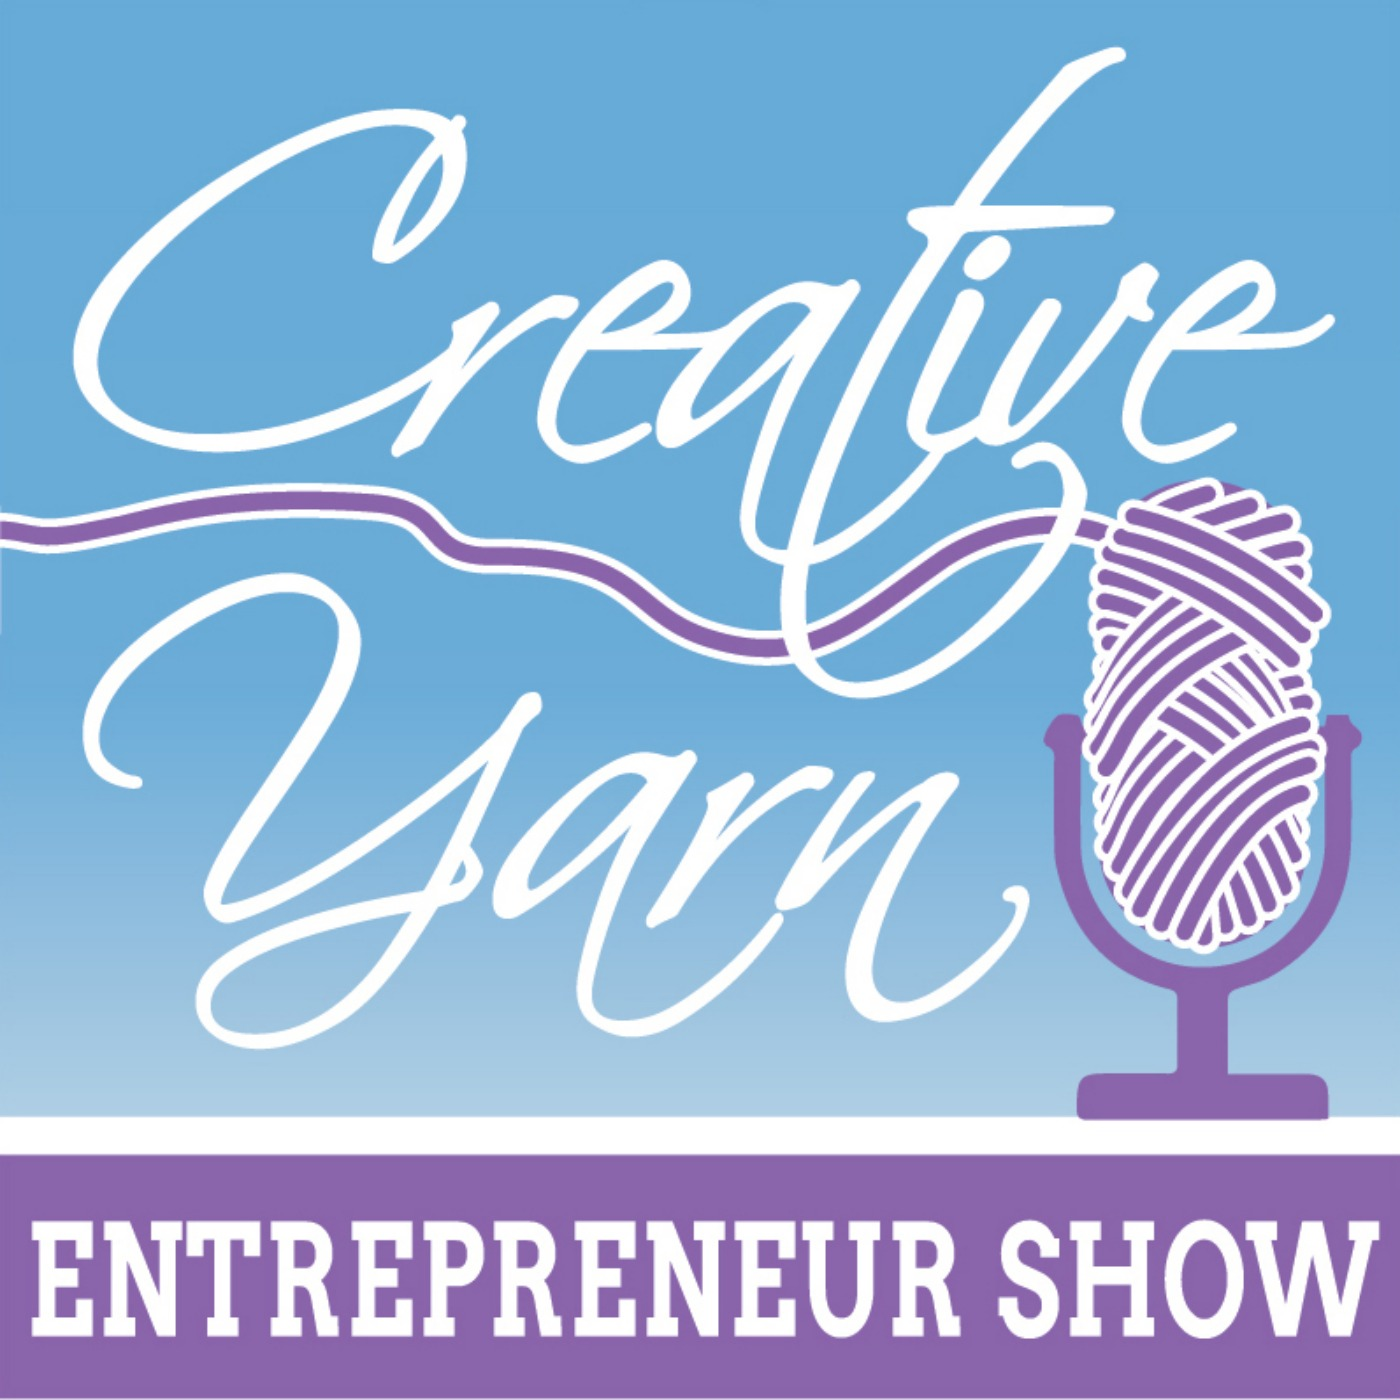 Episode 56: 6 Income Streams for Yarn-Related Businesses